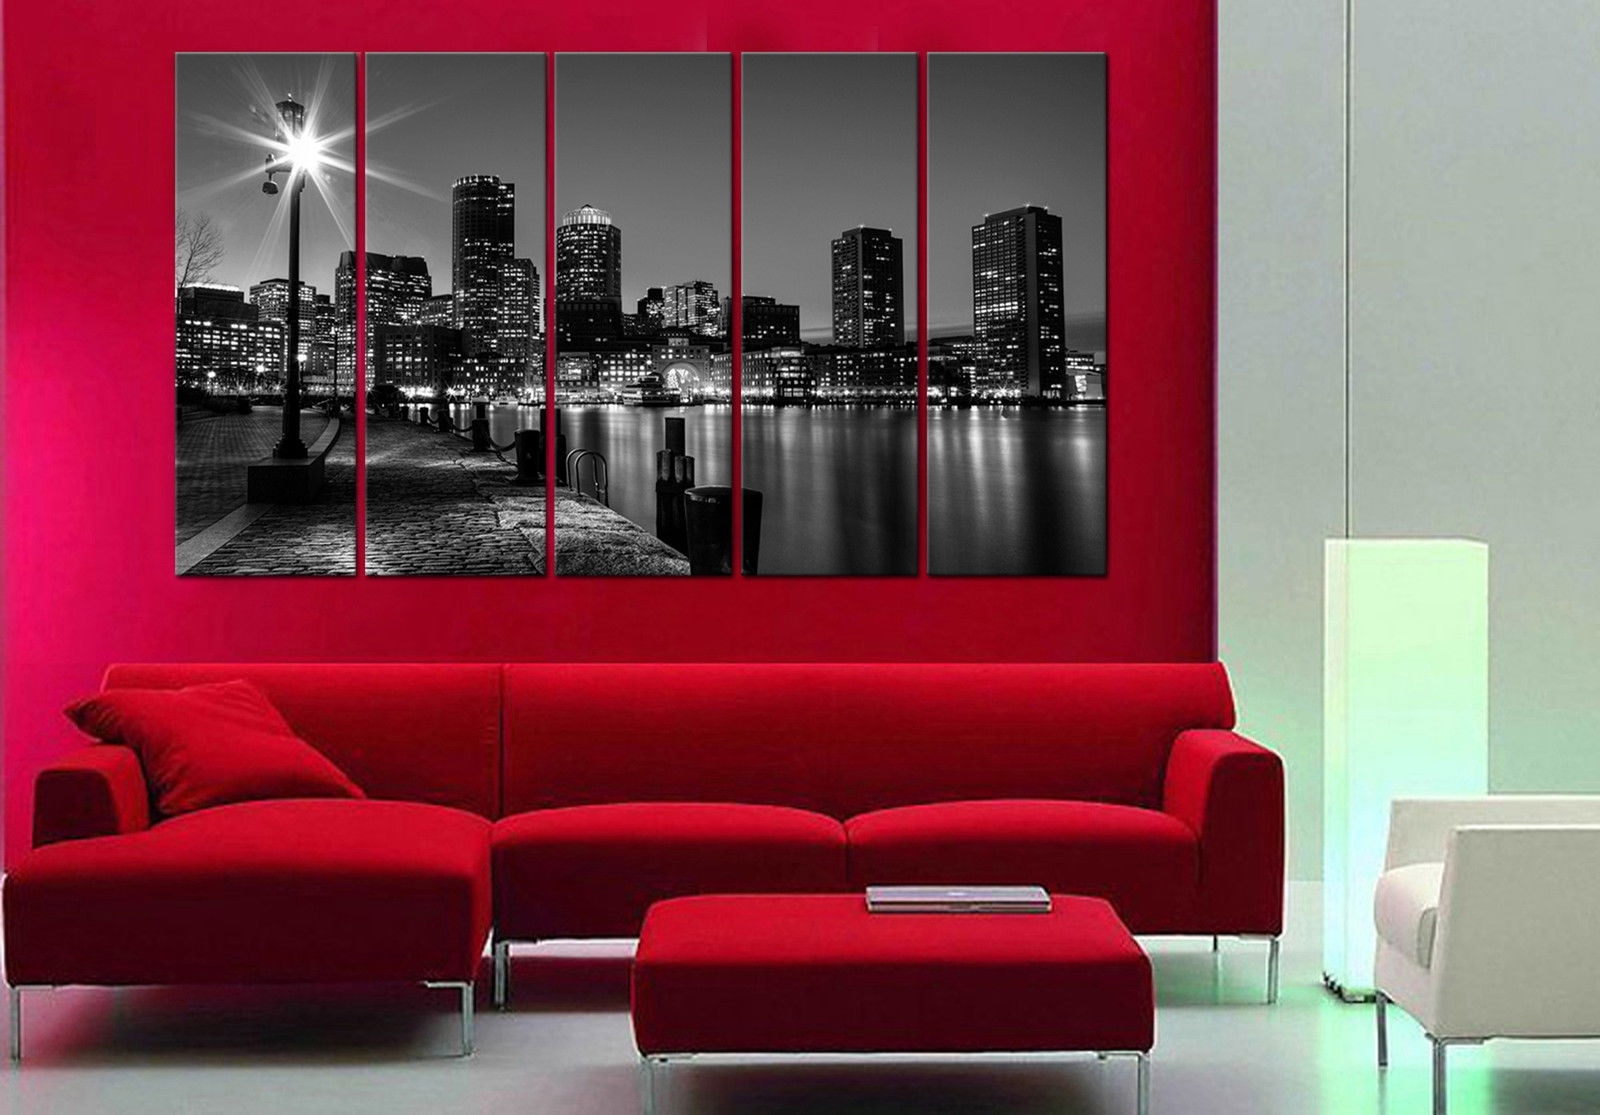 Boston Night 5 Piece Mounted Fiber Board Canvas Wall Art/better Than Intended For Boston Wall Art (View 20 of 20)